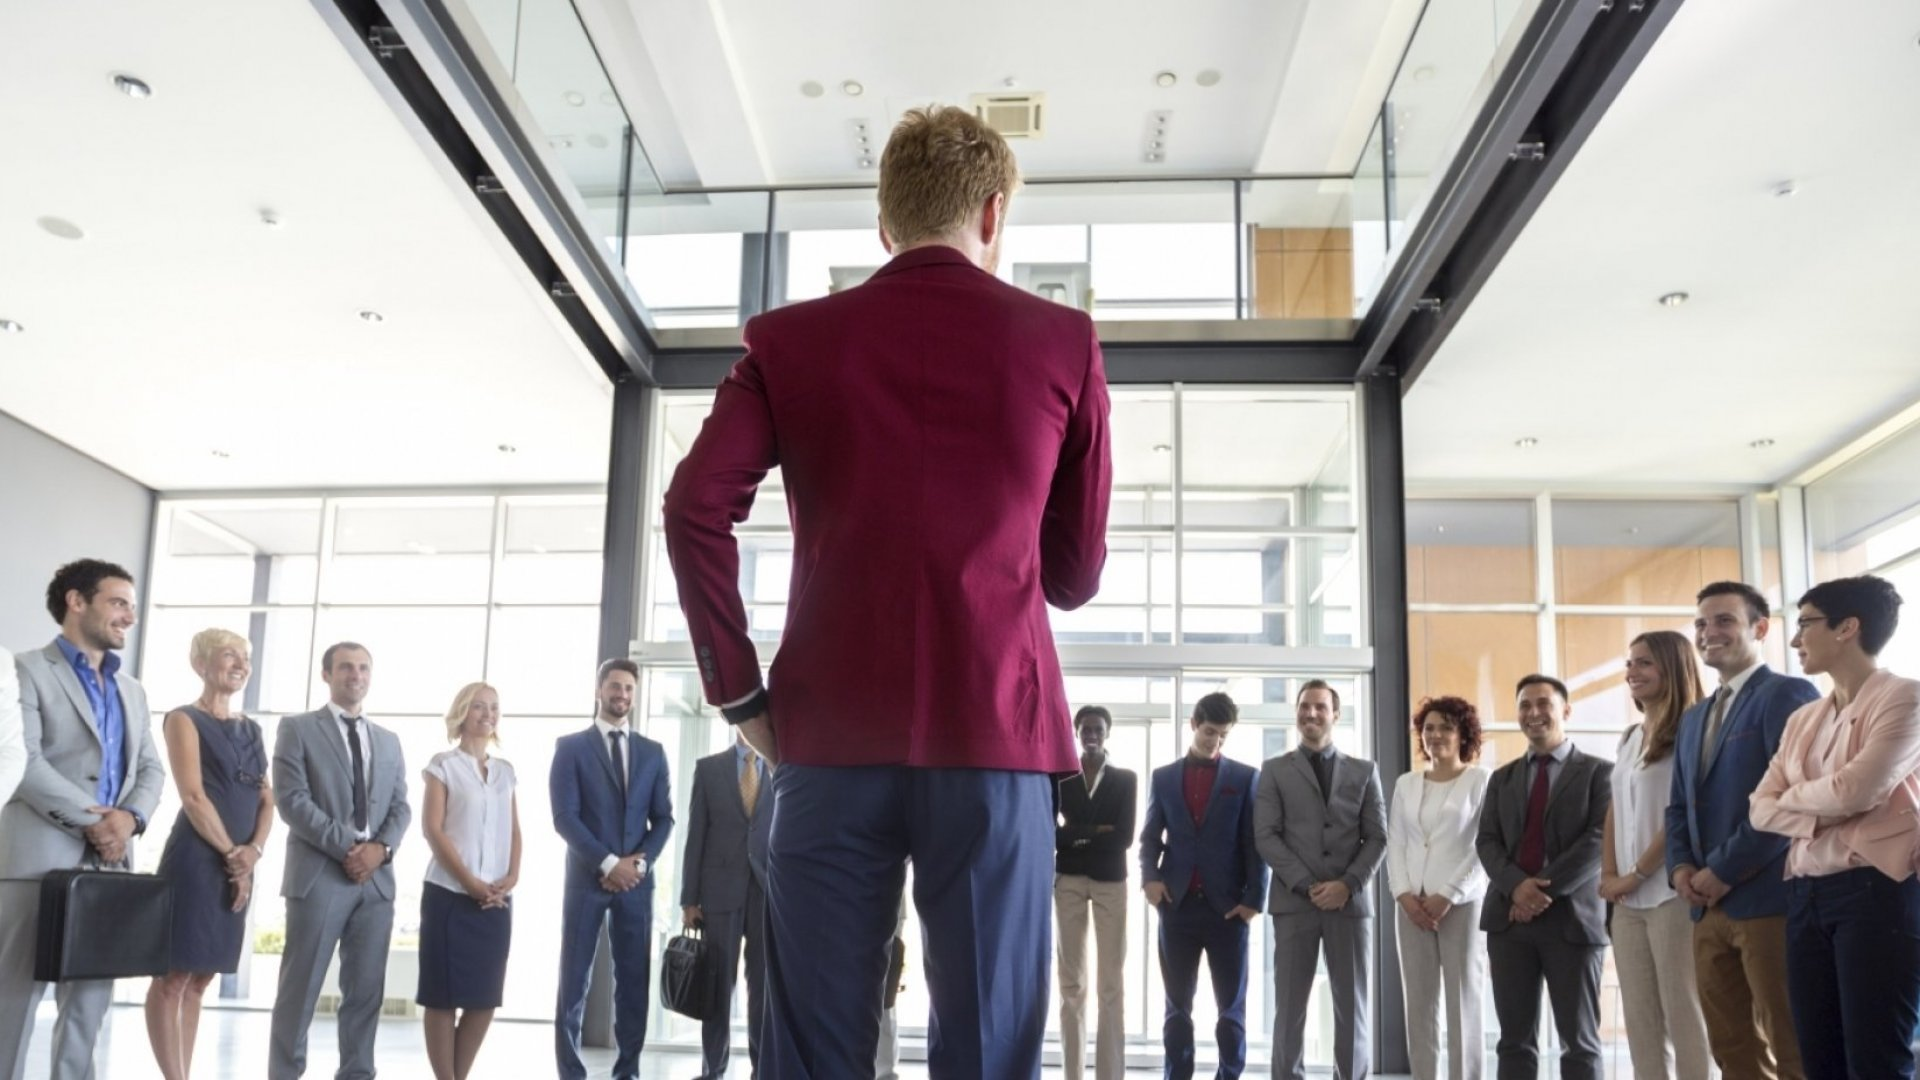 5 Common Myths About Management You Need to Stop Believing